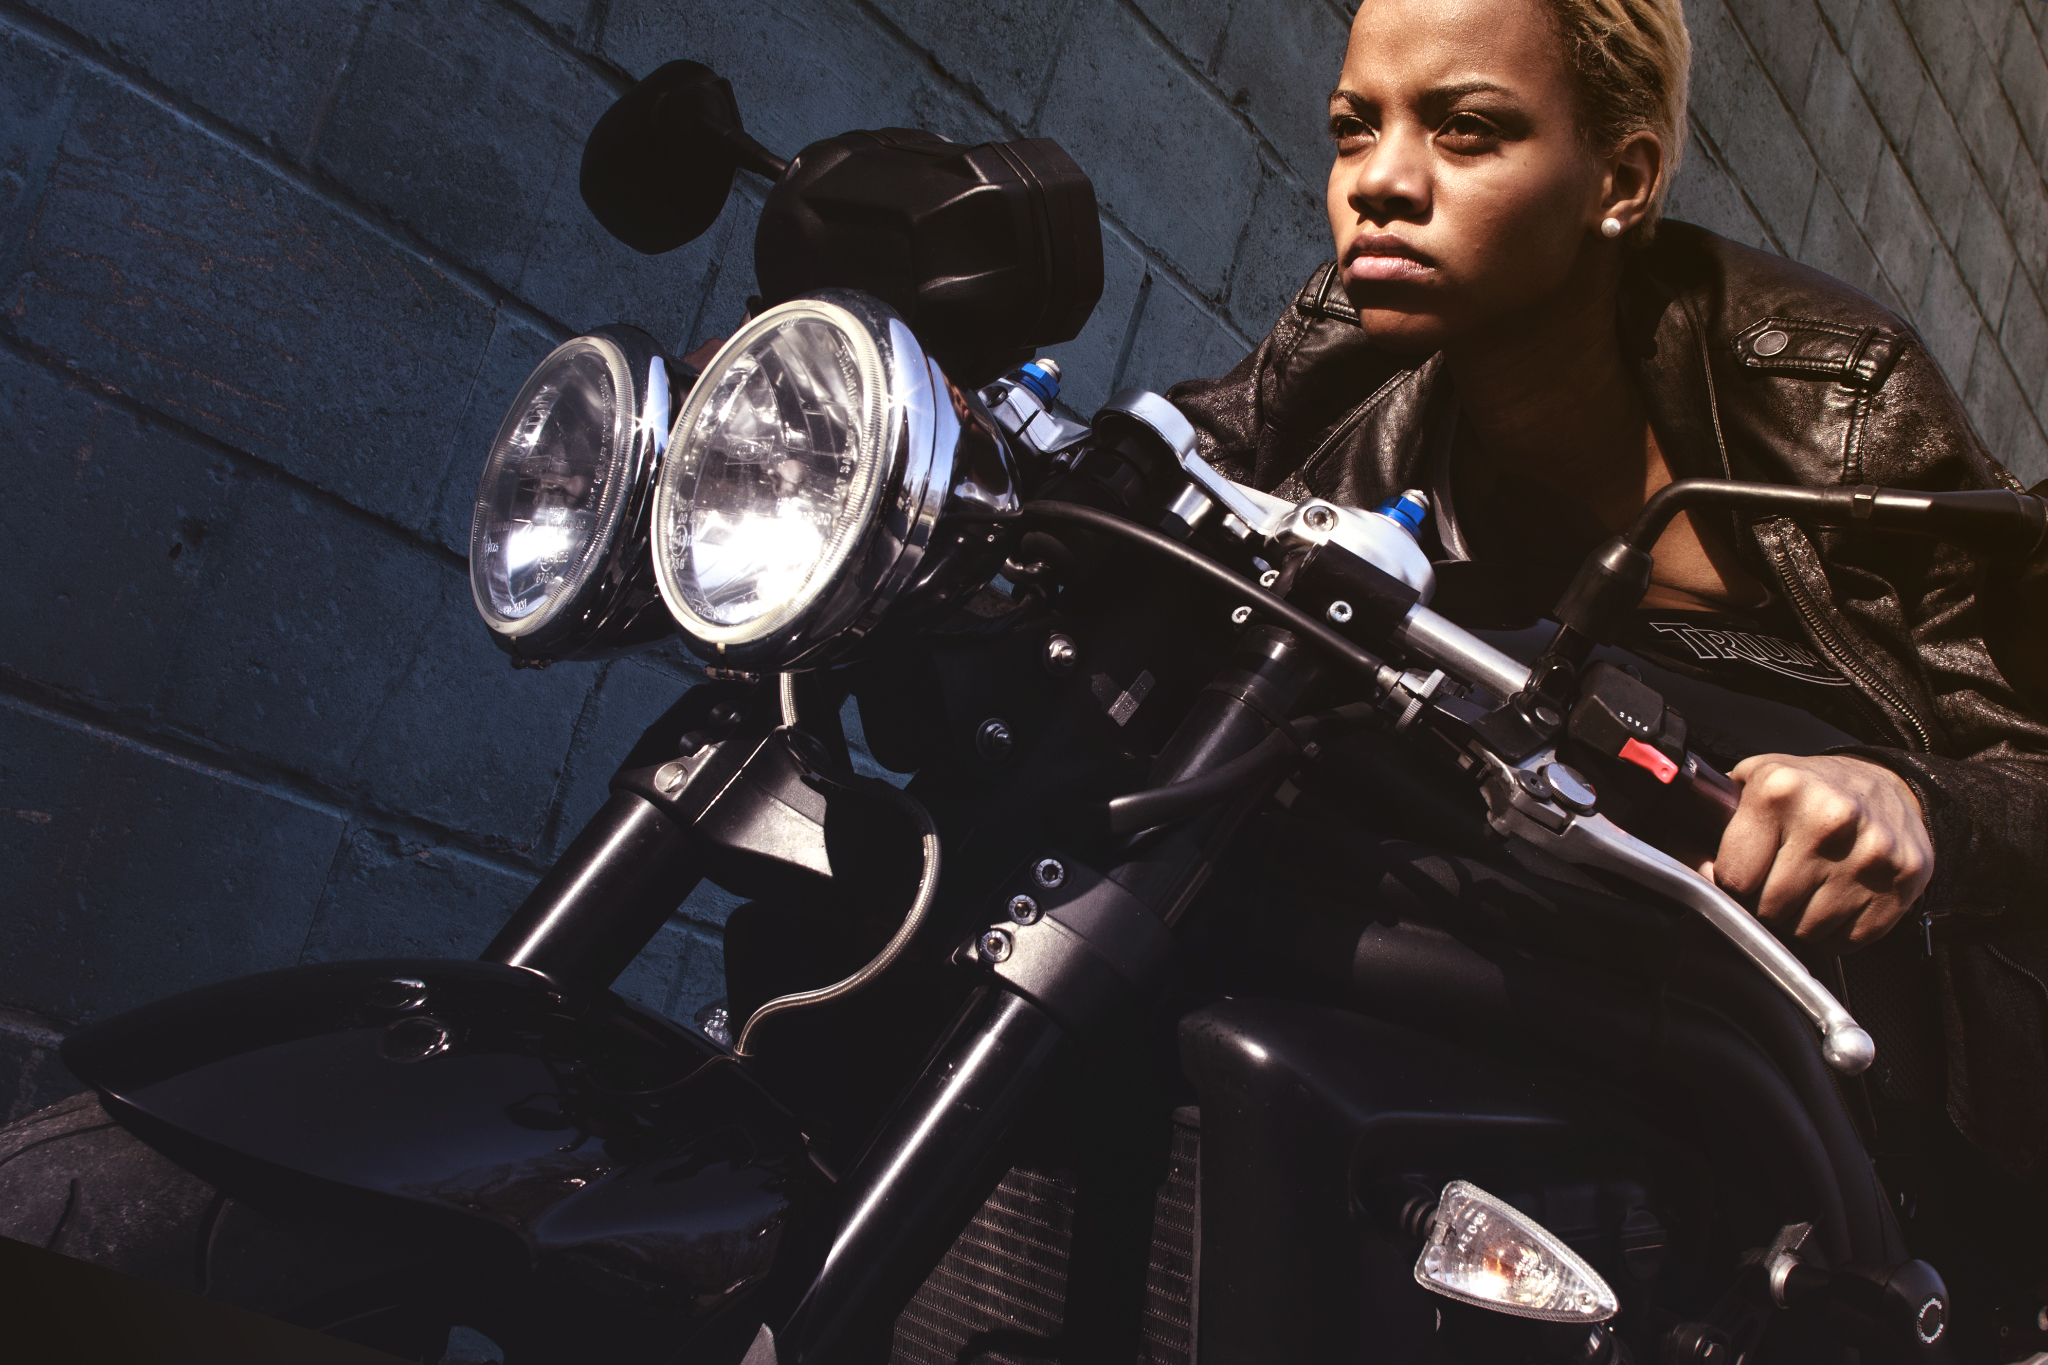 MODEL ON TRIUMPH SPEED TRIPLE